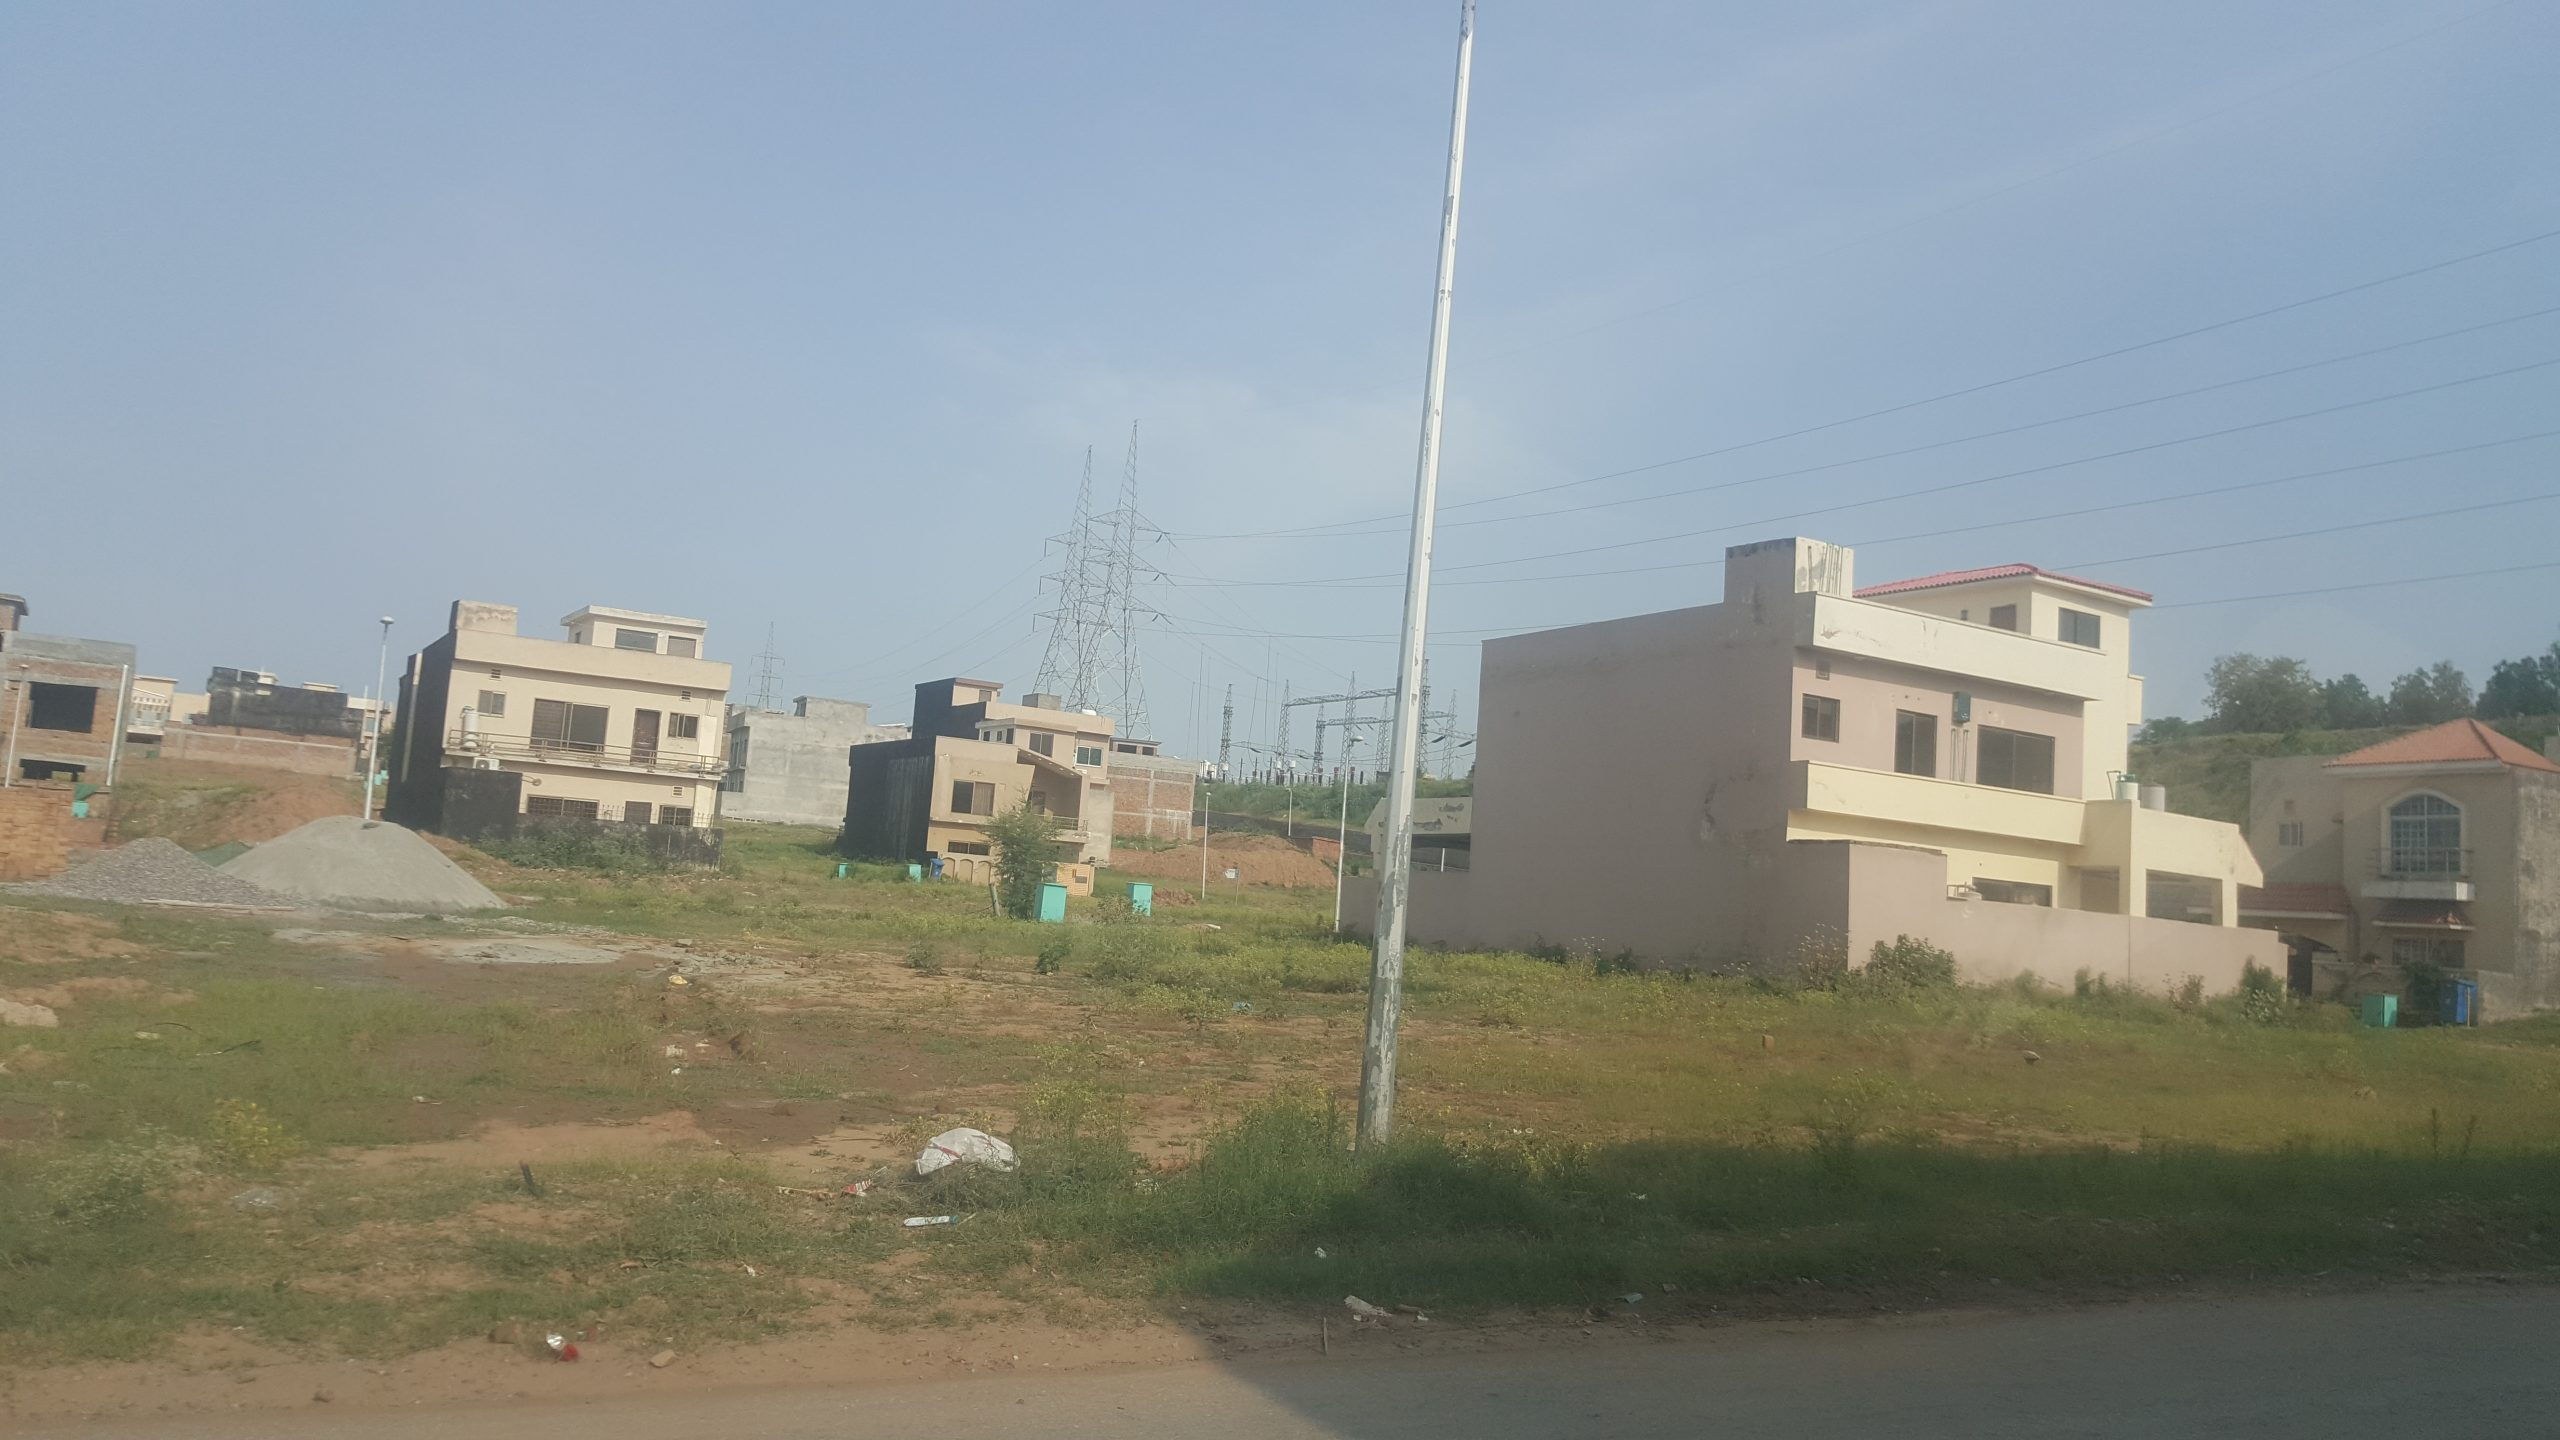 5 Marla Bahria Town Rawalpindi Phase 8 Safari Valley Ali Block Plot For Sale On Reasonable Price Ready For Construction